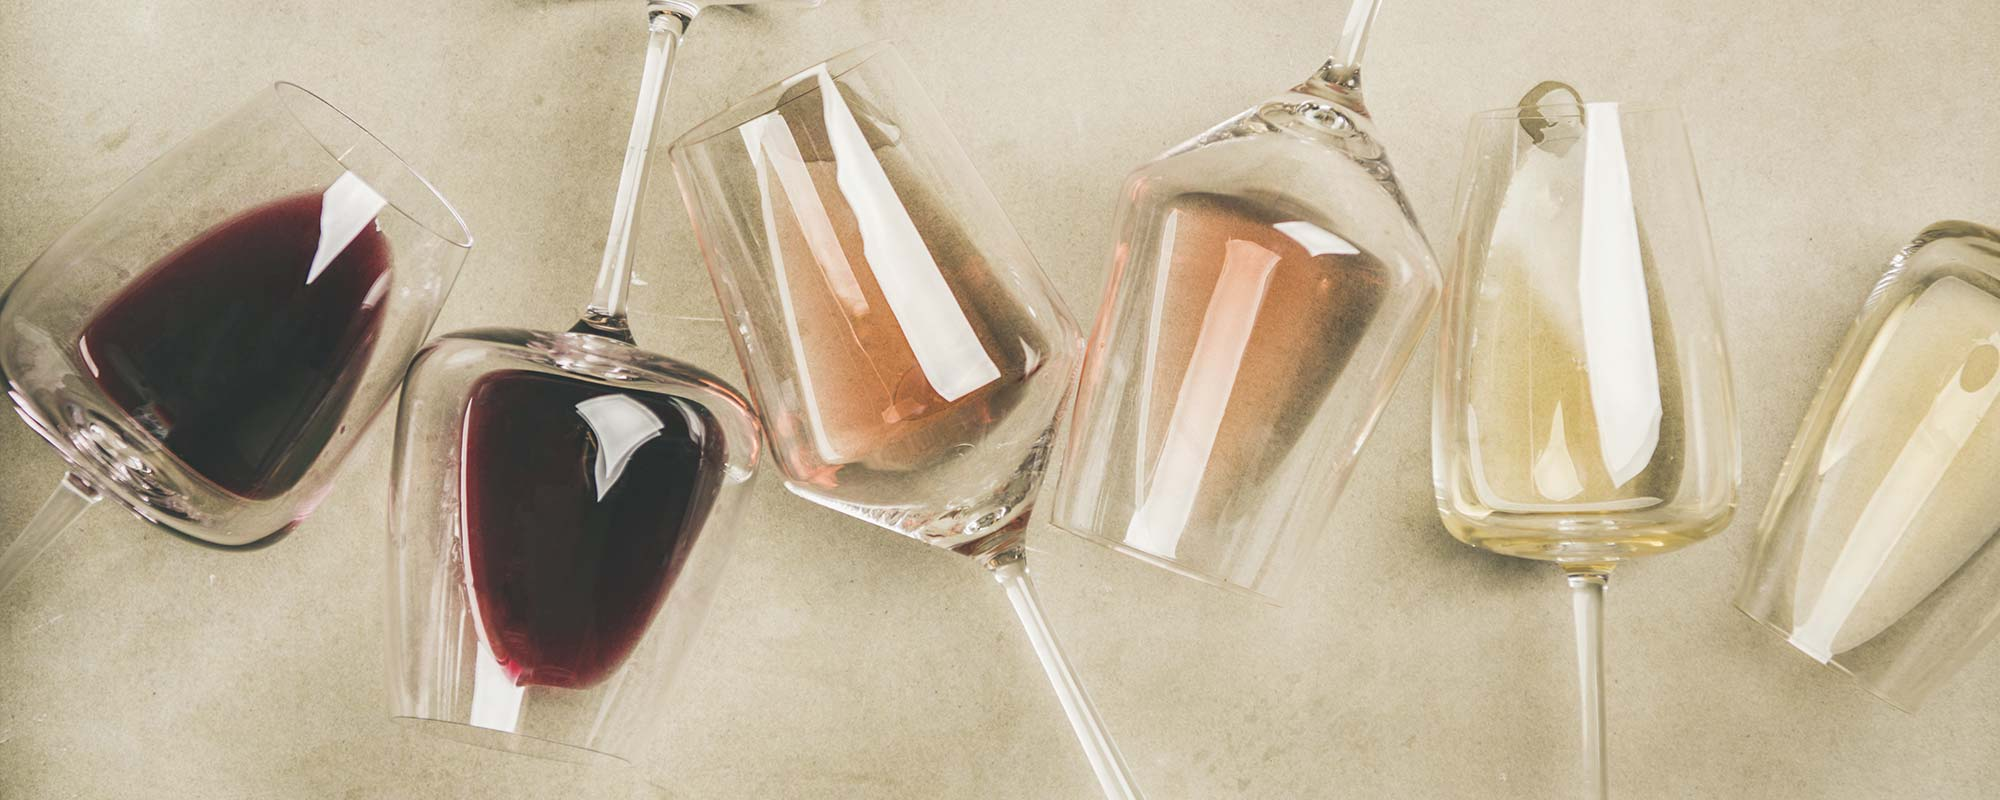 Close up, wine glasses in a row tipped over sideways on a table